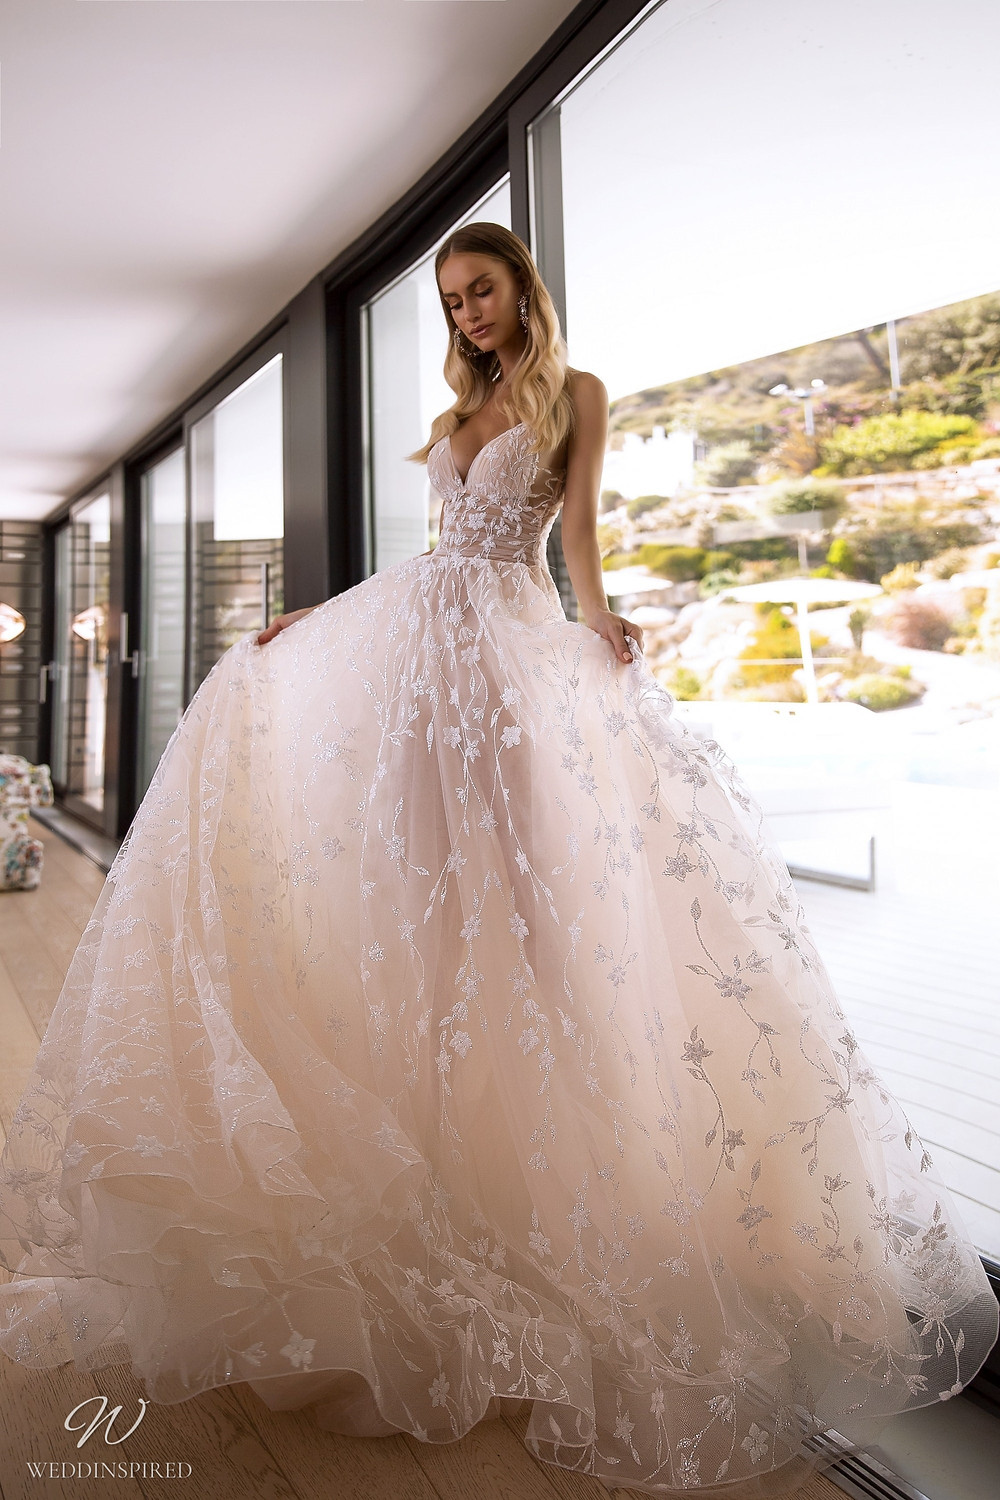 A Tina Valerdi blush tulle A-line wedding dress with lace and straps